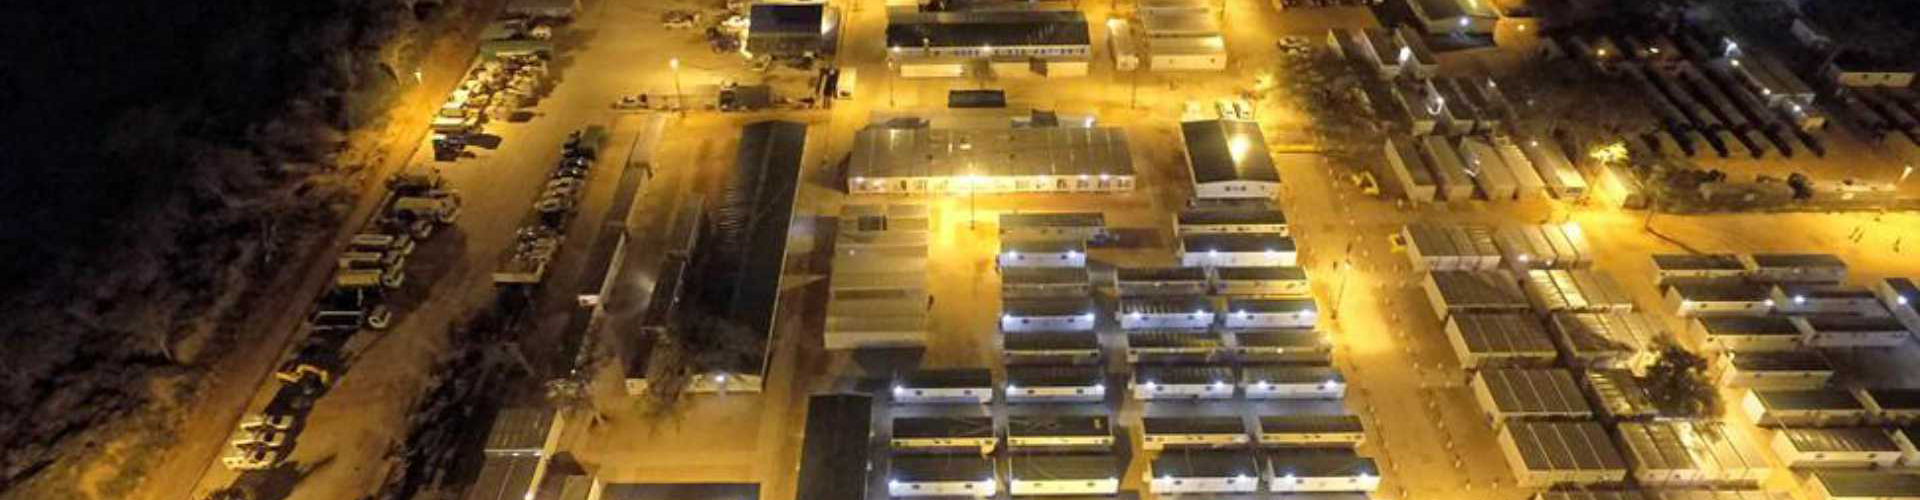 Kwikspace sells relocatable buildings, and also has a large rental fleet to rent.